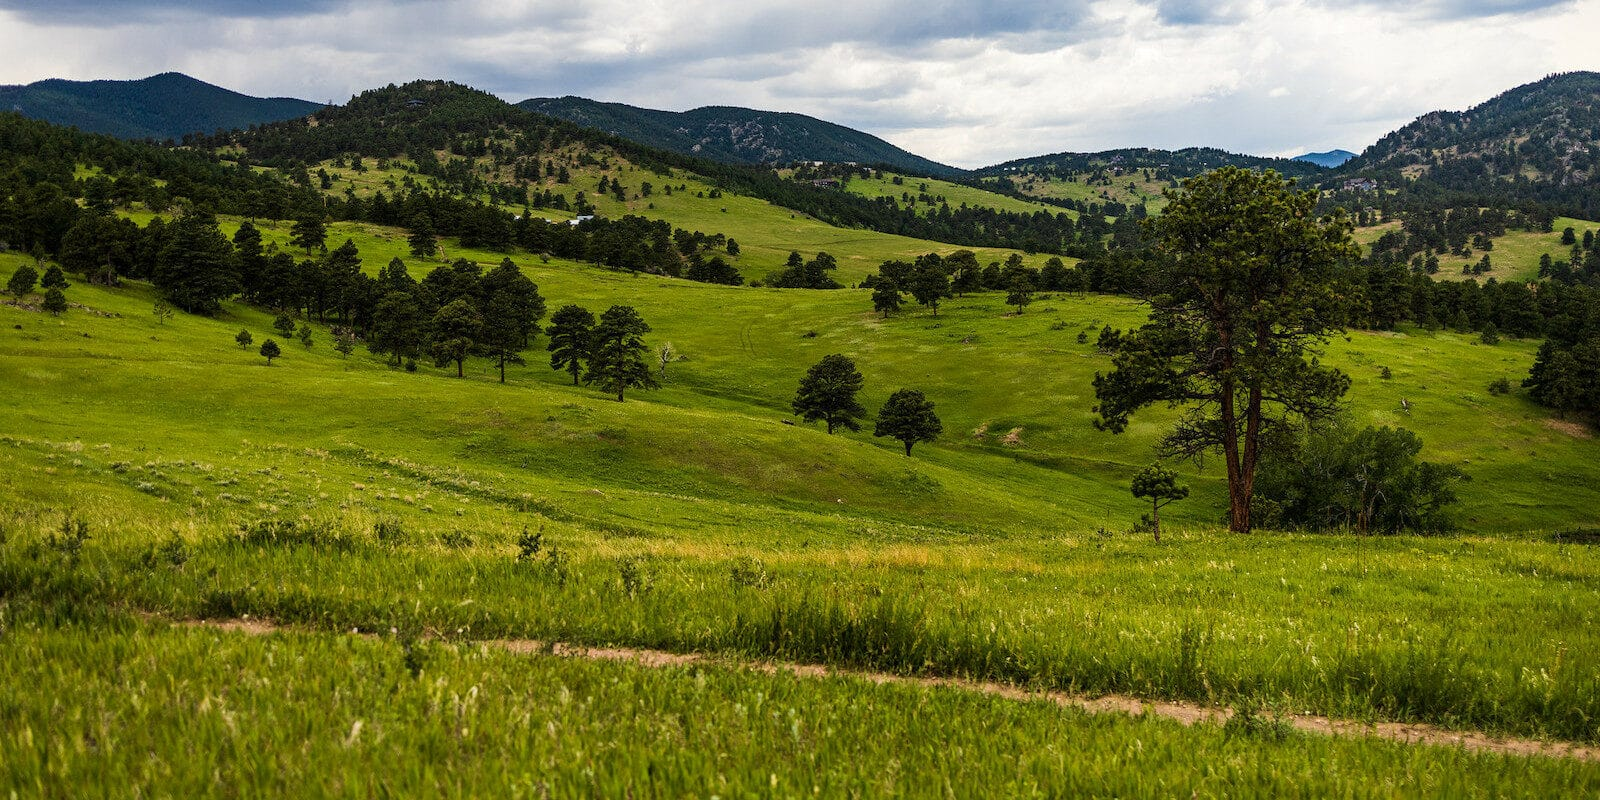 Image of scenic views at White Ranch Park in Golden, Colorado